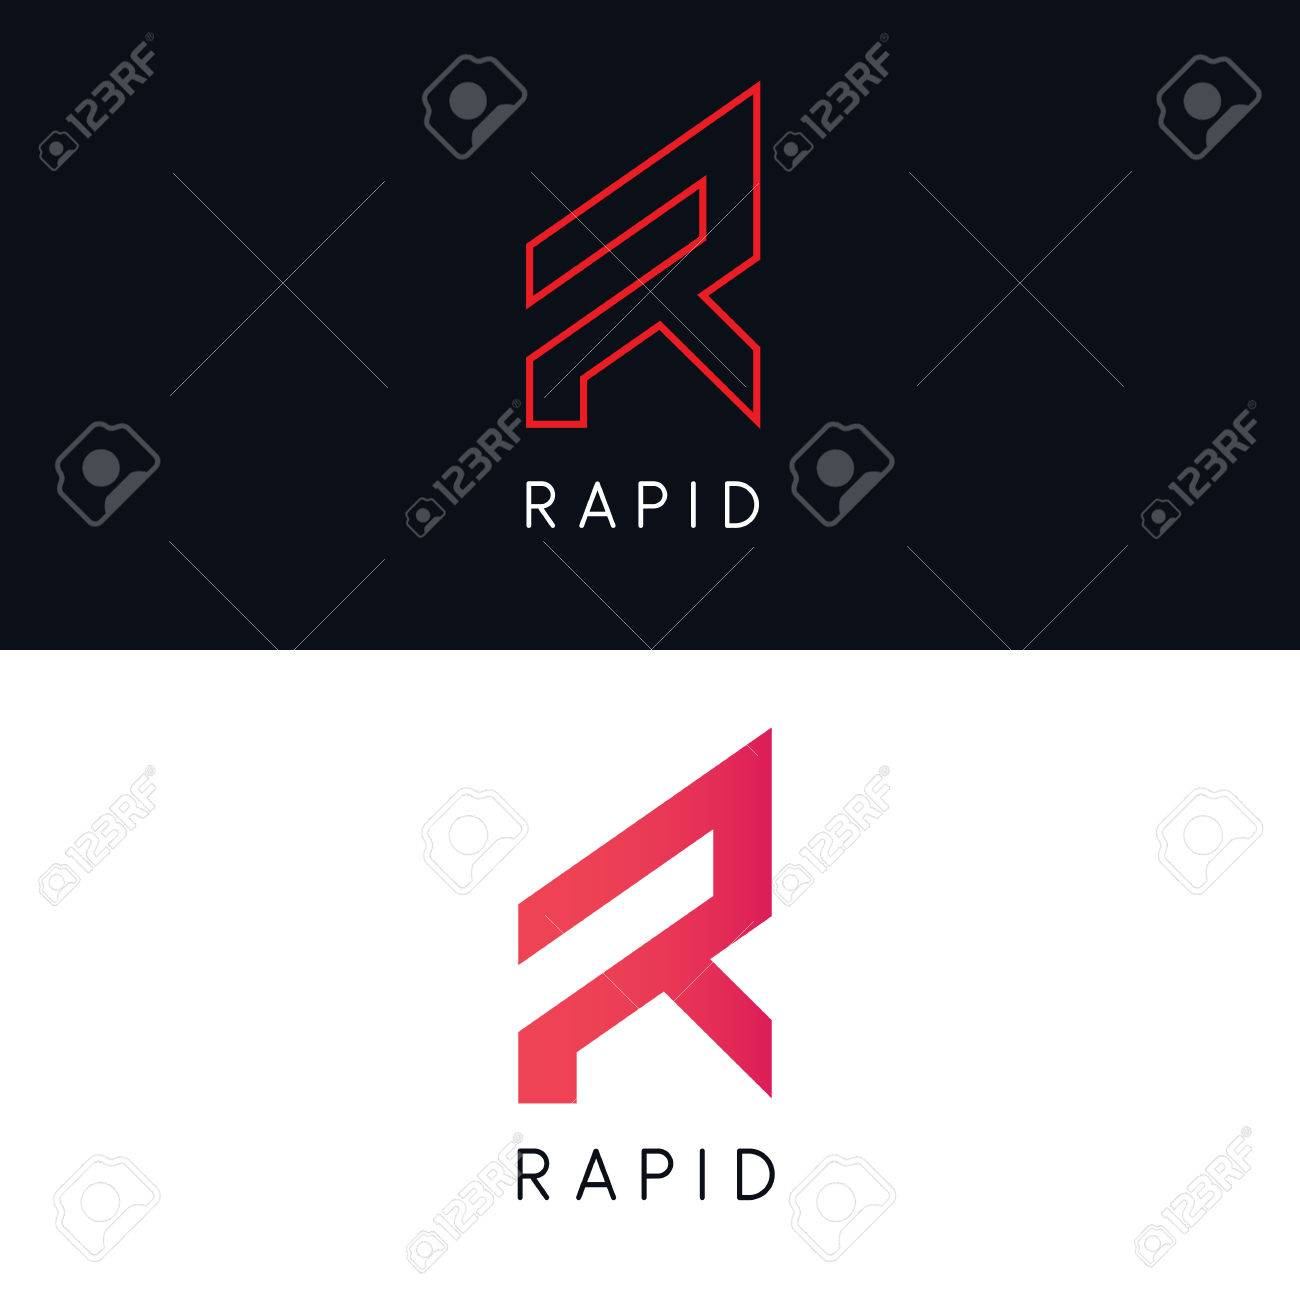 Minimalistic r letter logo iconic sign vector design royalty free minimalistic r letter logo iconic sign vector design stock vector 83165754 altavistaventures Gallery